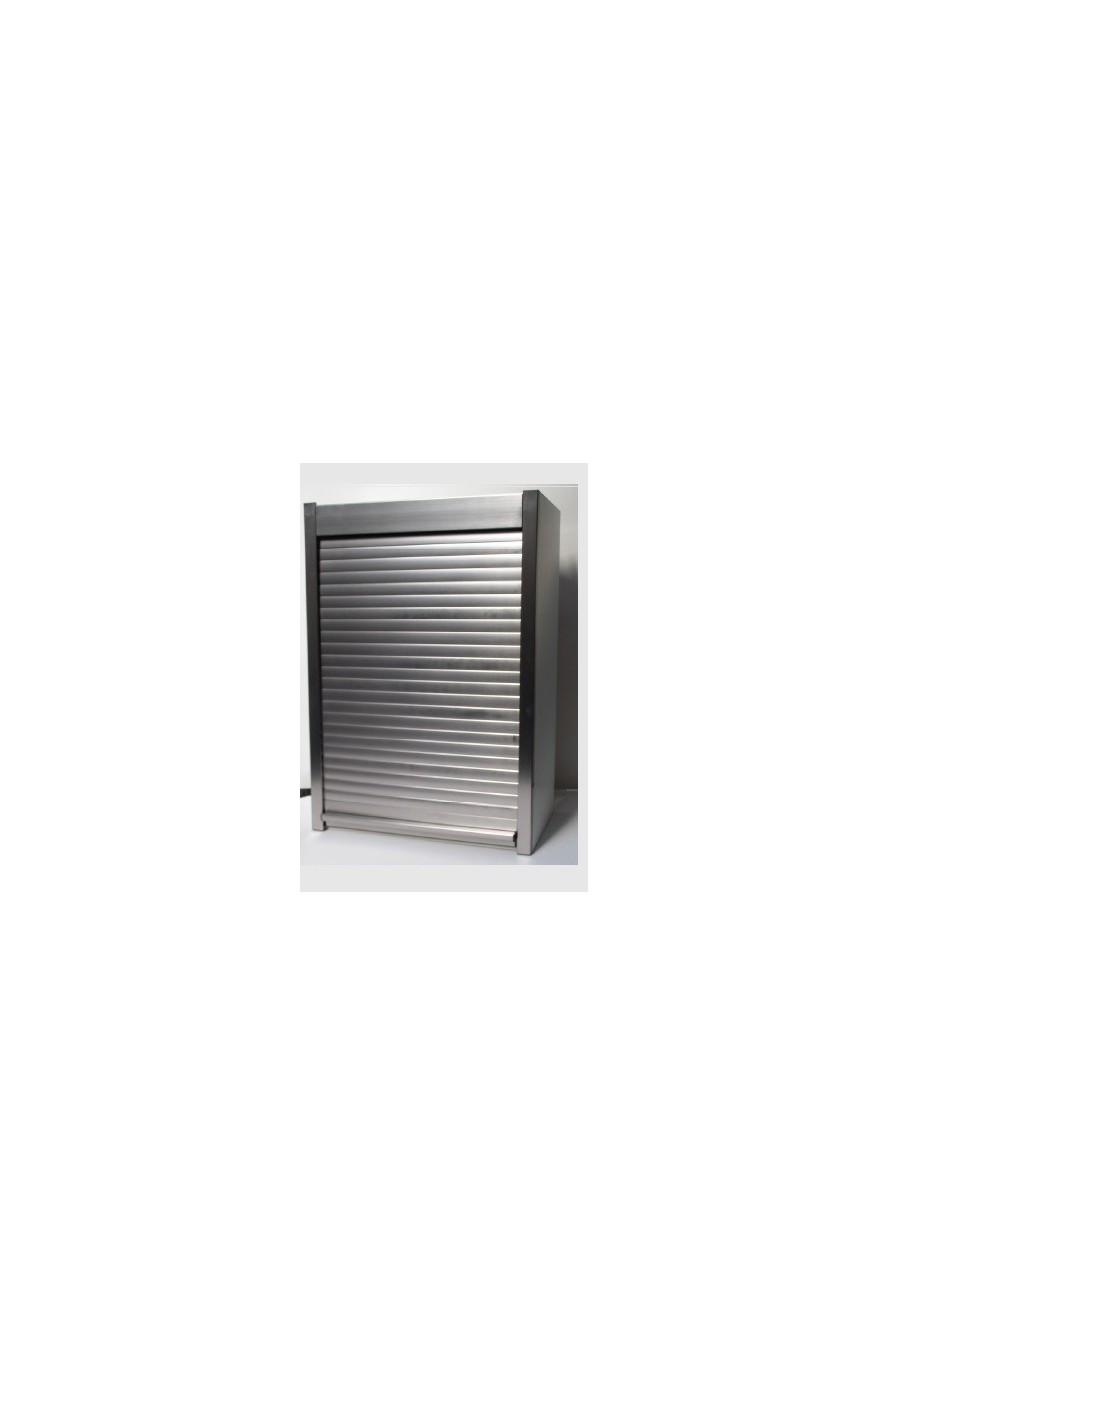 600mm tambour door kits modern roller shutter doors for for Kitchen cabinets 900mm high